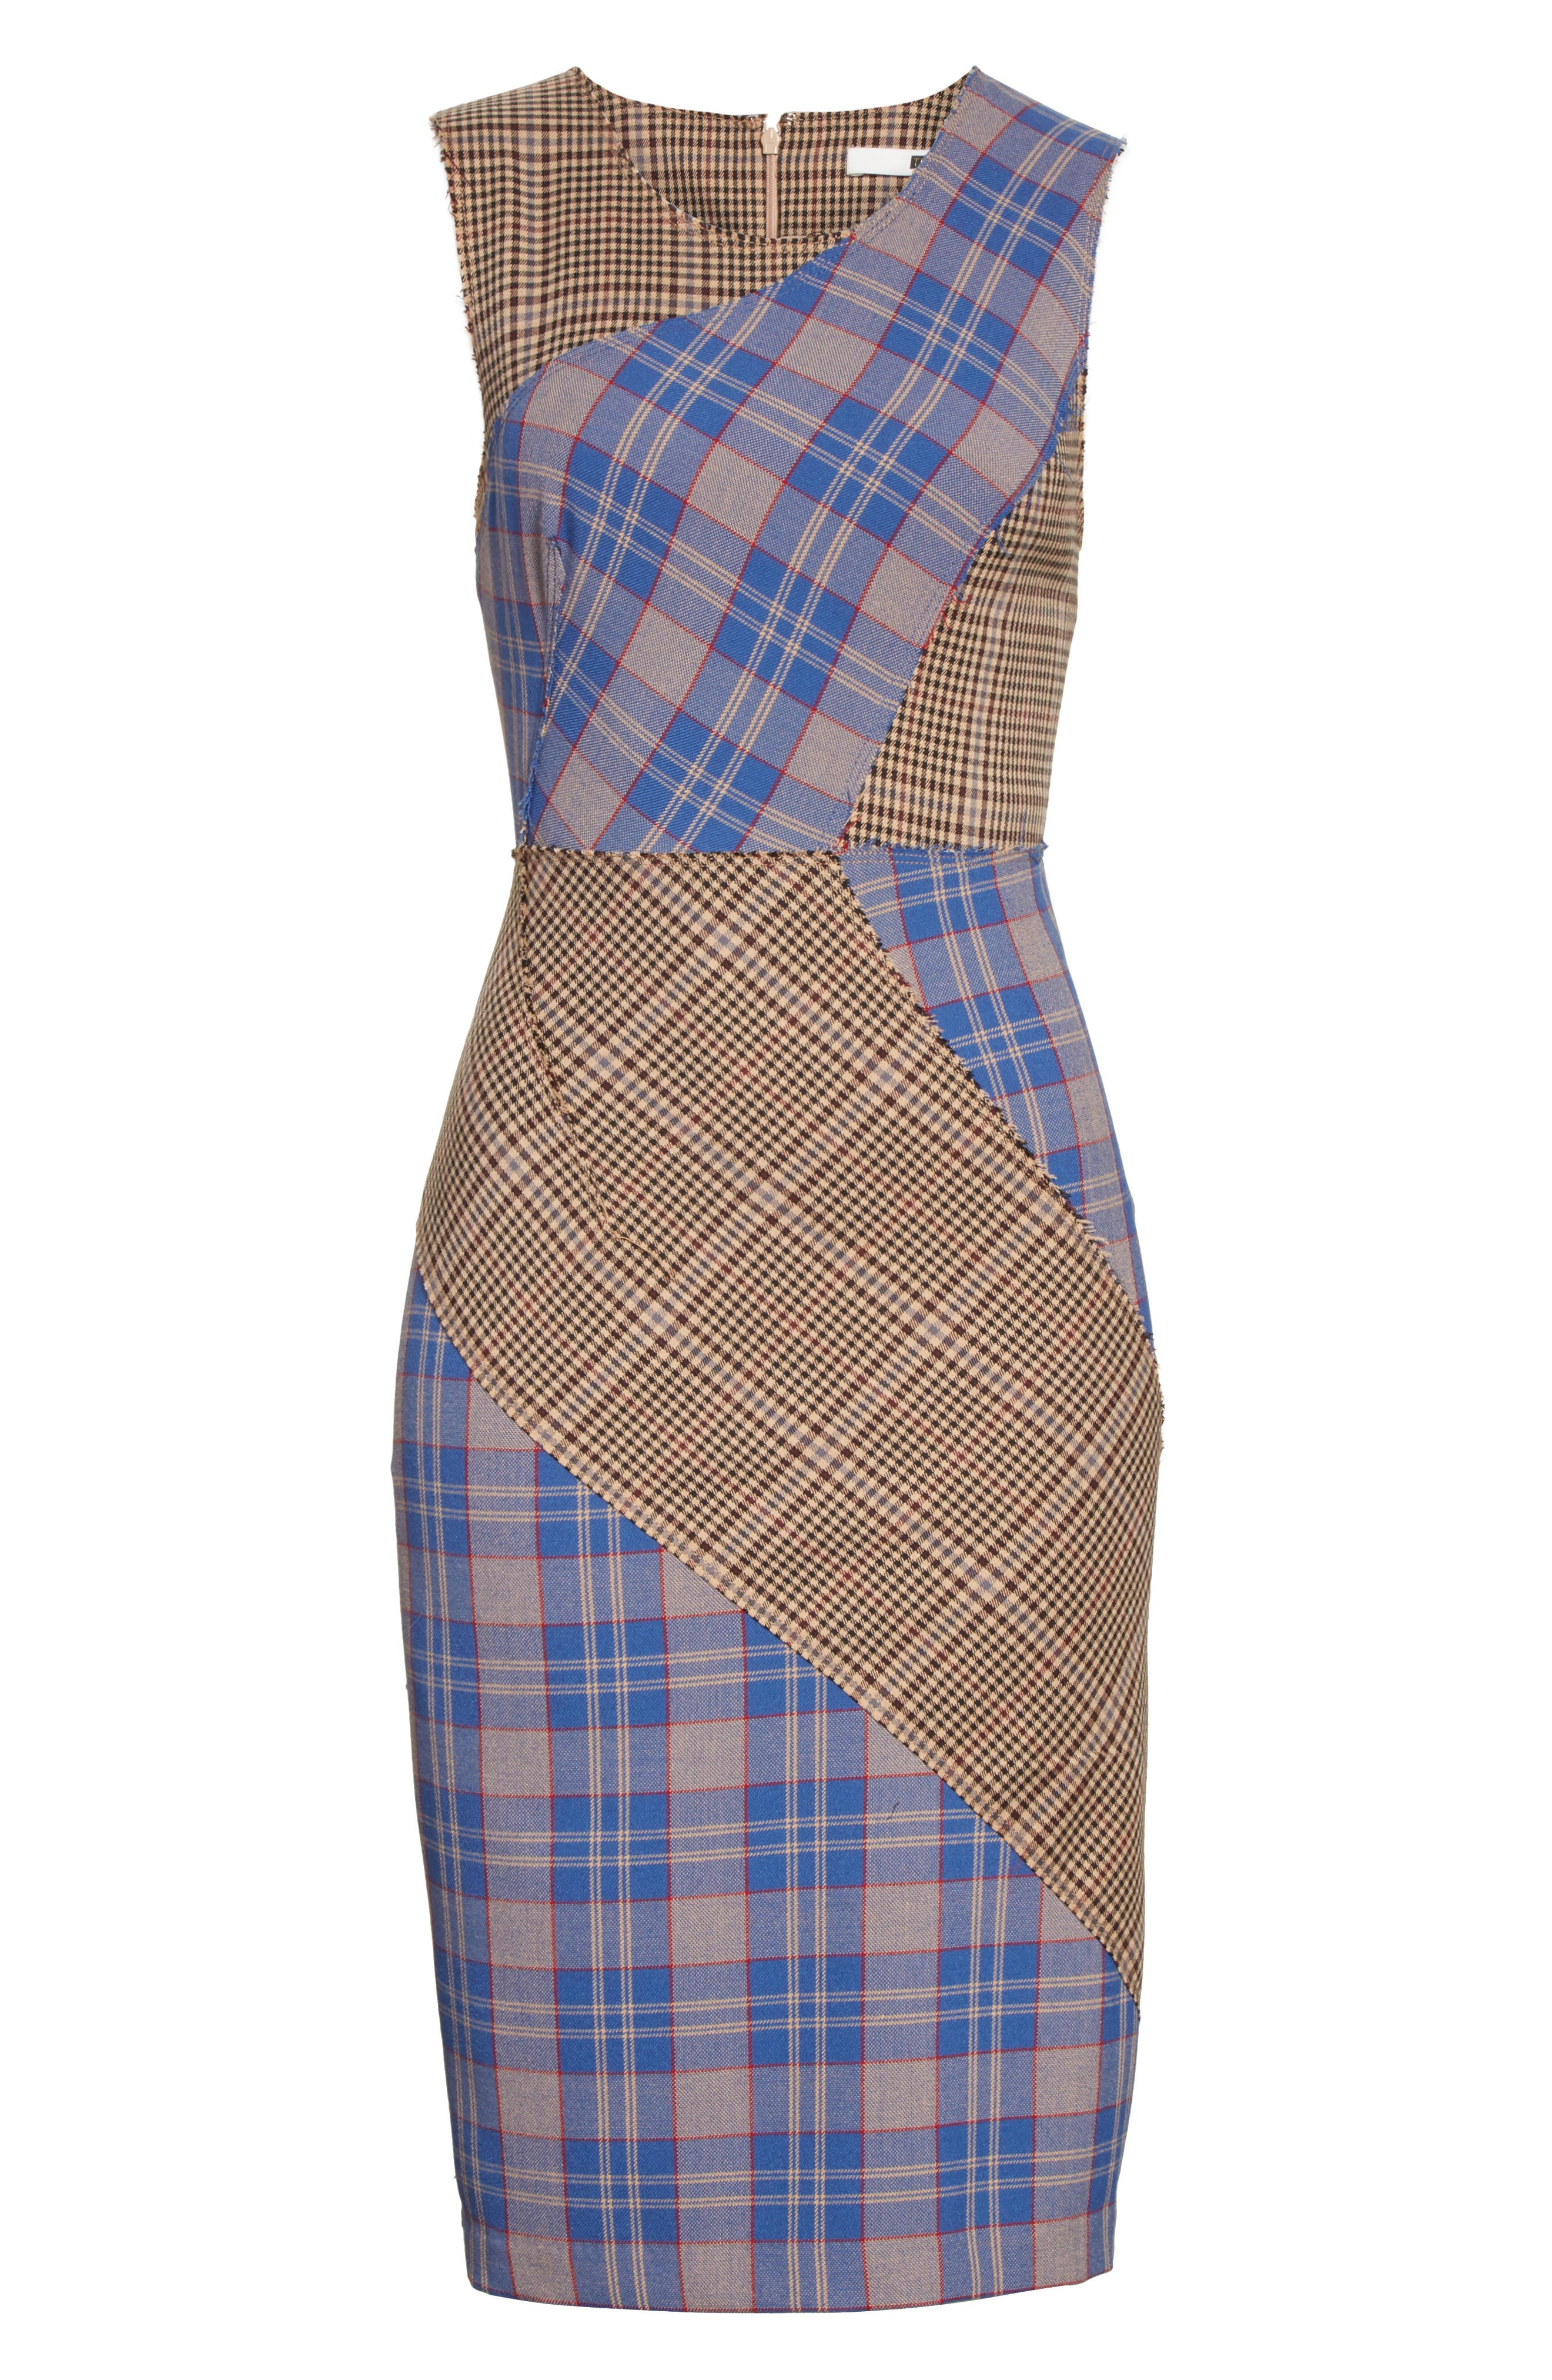 Patchwork Plaid Sheath Dress,                             Alternate thumbnail 6, color,                             459